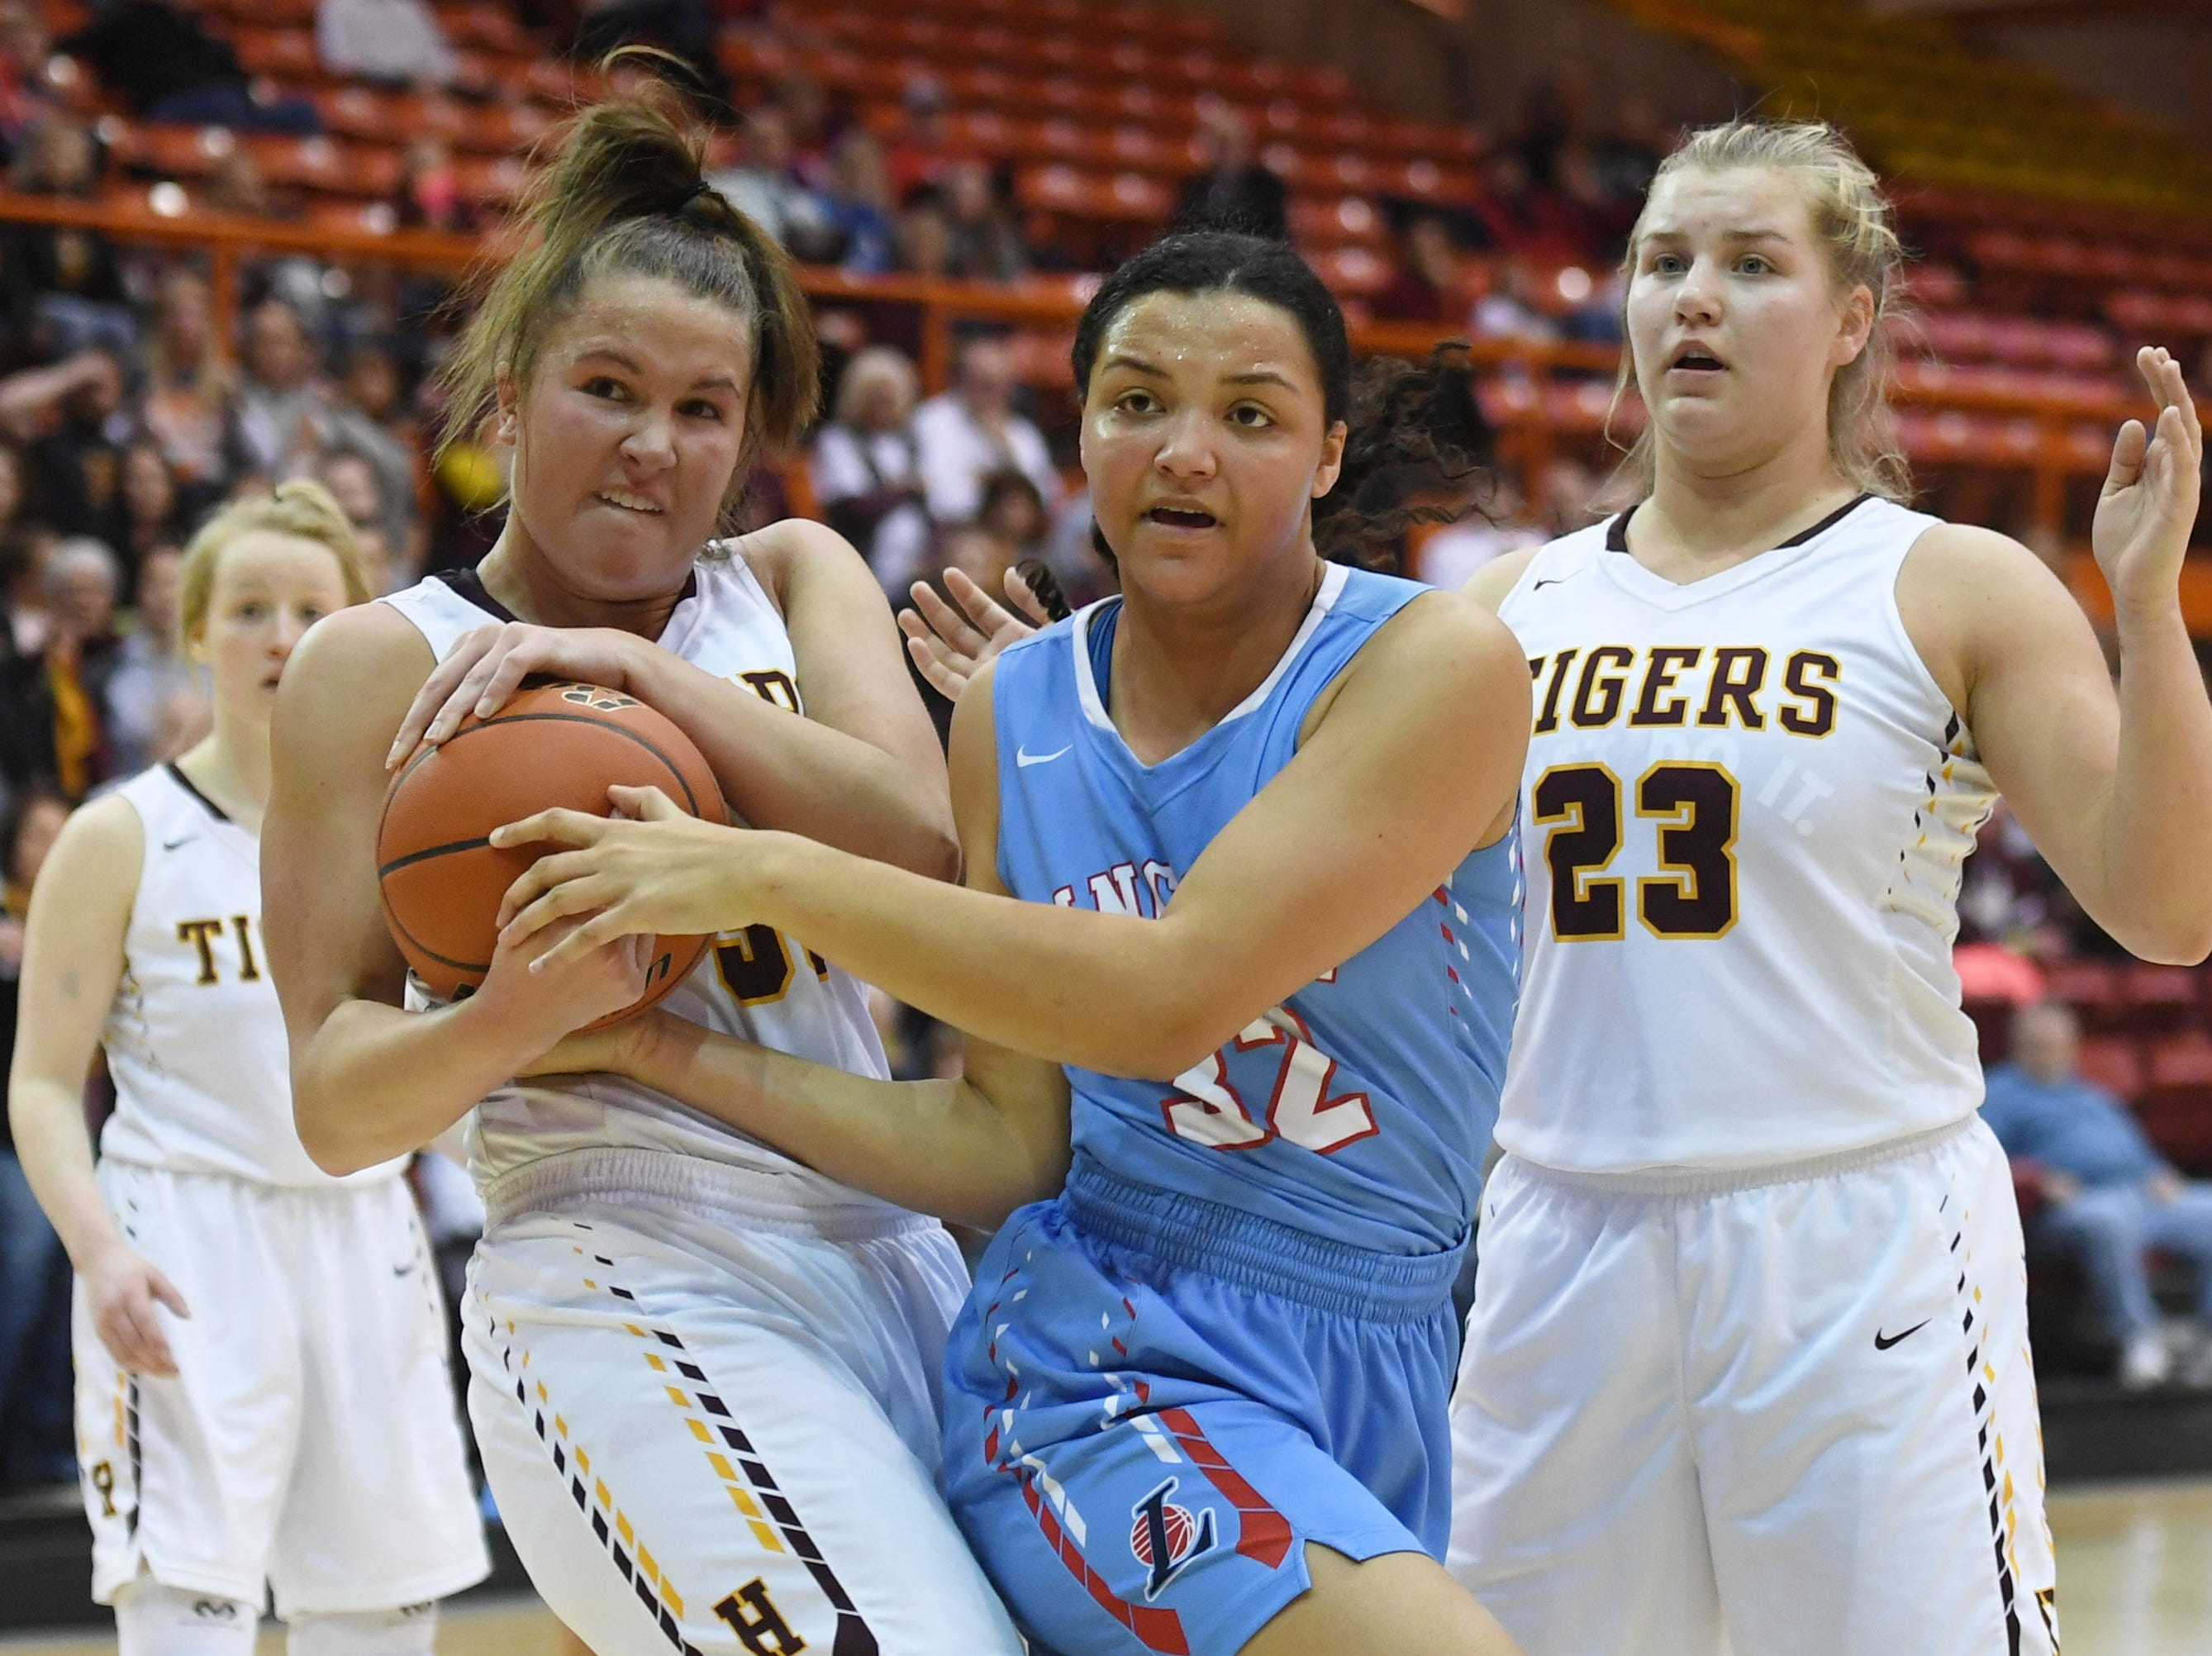 Lincoln's Sydnaya Dunn goes against Harrisburg's Jeniah Ugofsky during the game in the Class AA semifinals Thursday, March 15, in Rapid City.